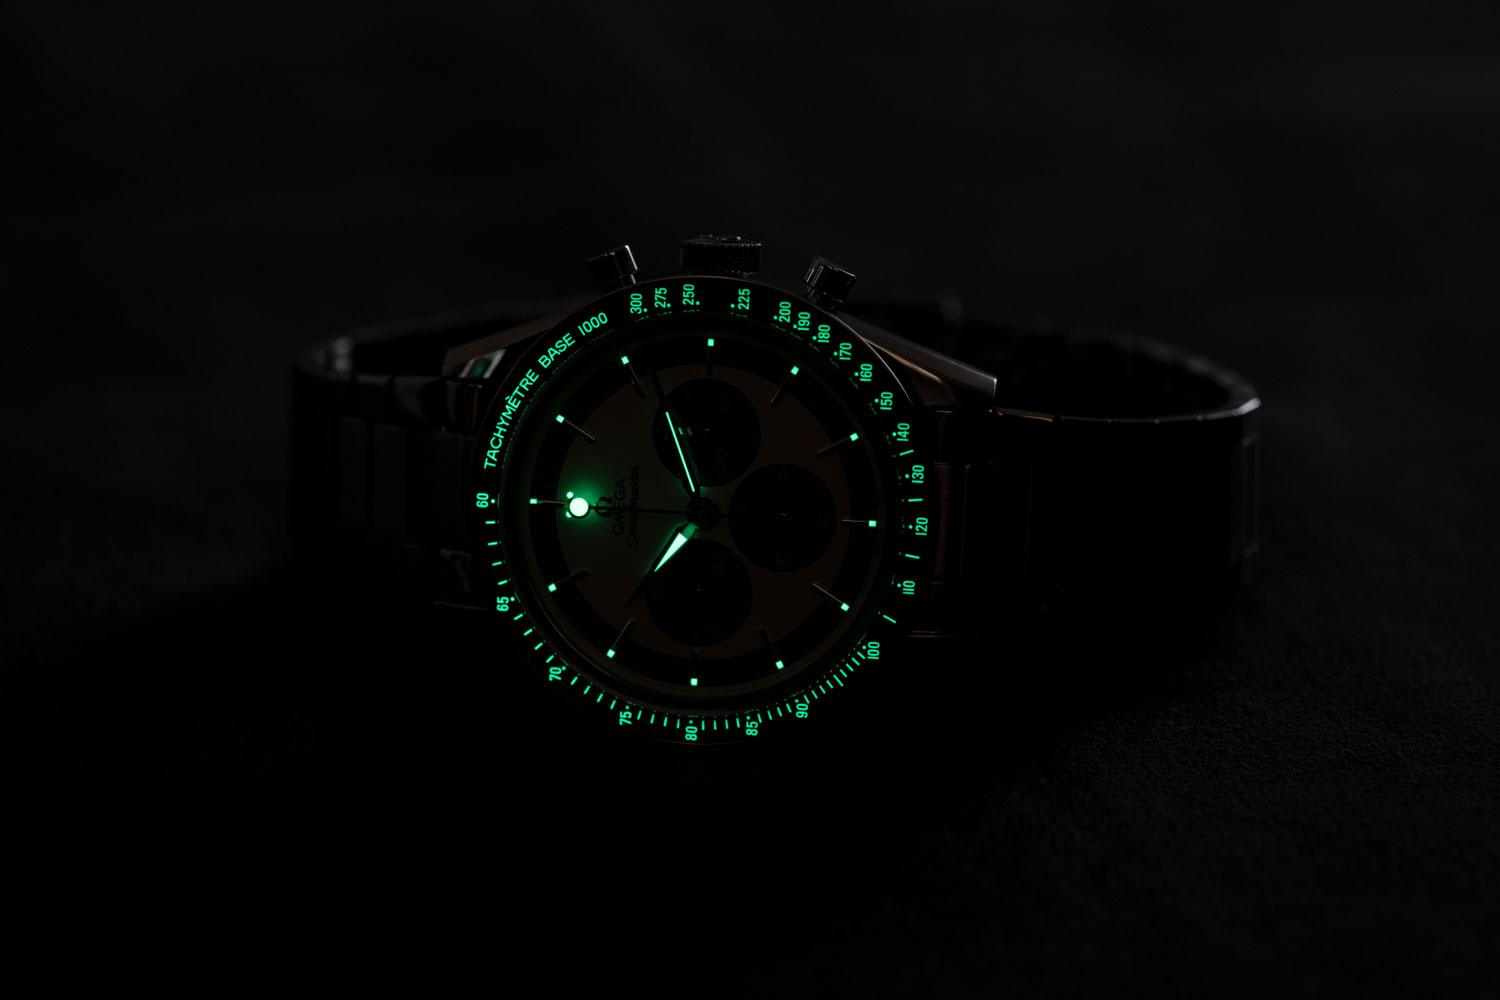 """Lume on the The Speedmaster """"CK2998"""" Limited Edition appears on the dial and as well on the polished ceramic bezel with tachymeter base scale (©Revolution)"""